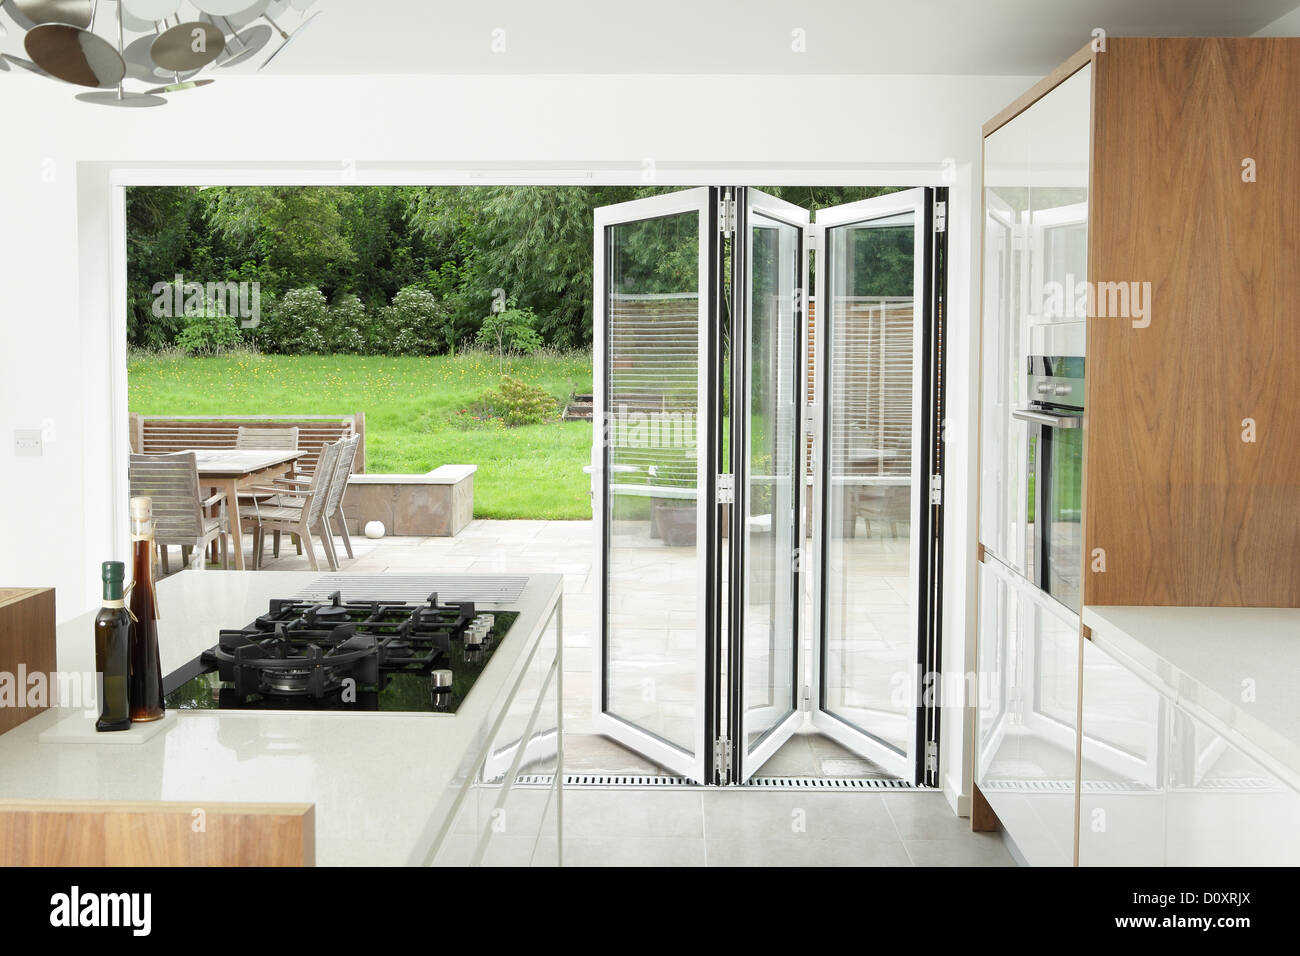 Kitchen with open patio doors & Kitchen with open patio doors Stock Photo Royalty Free Image ... pezcame.com